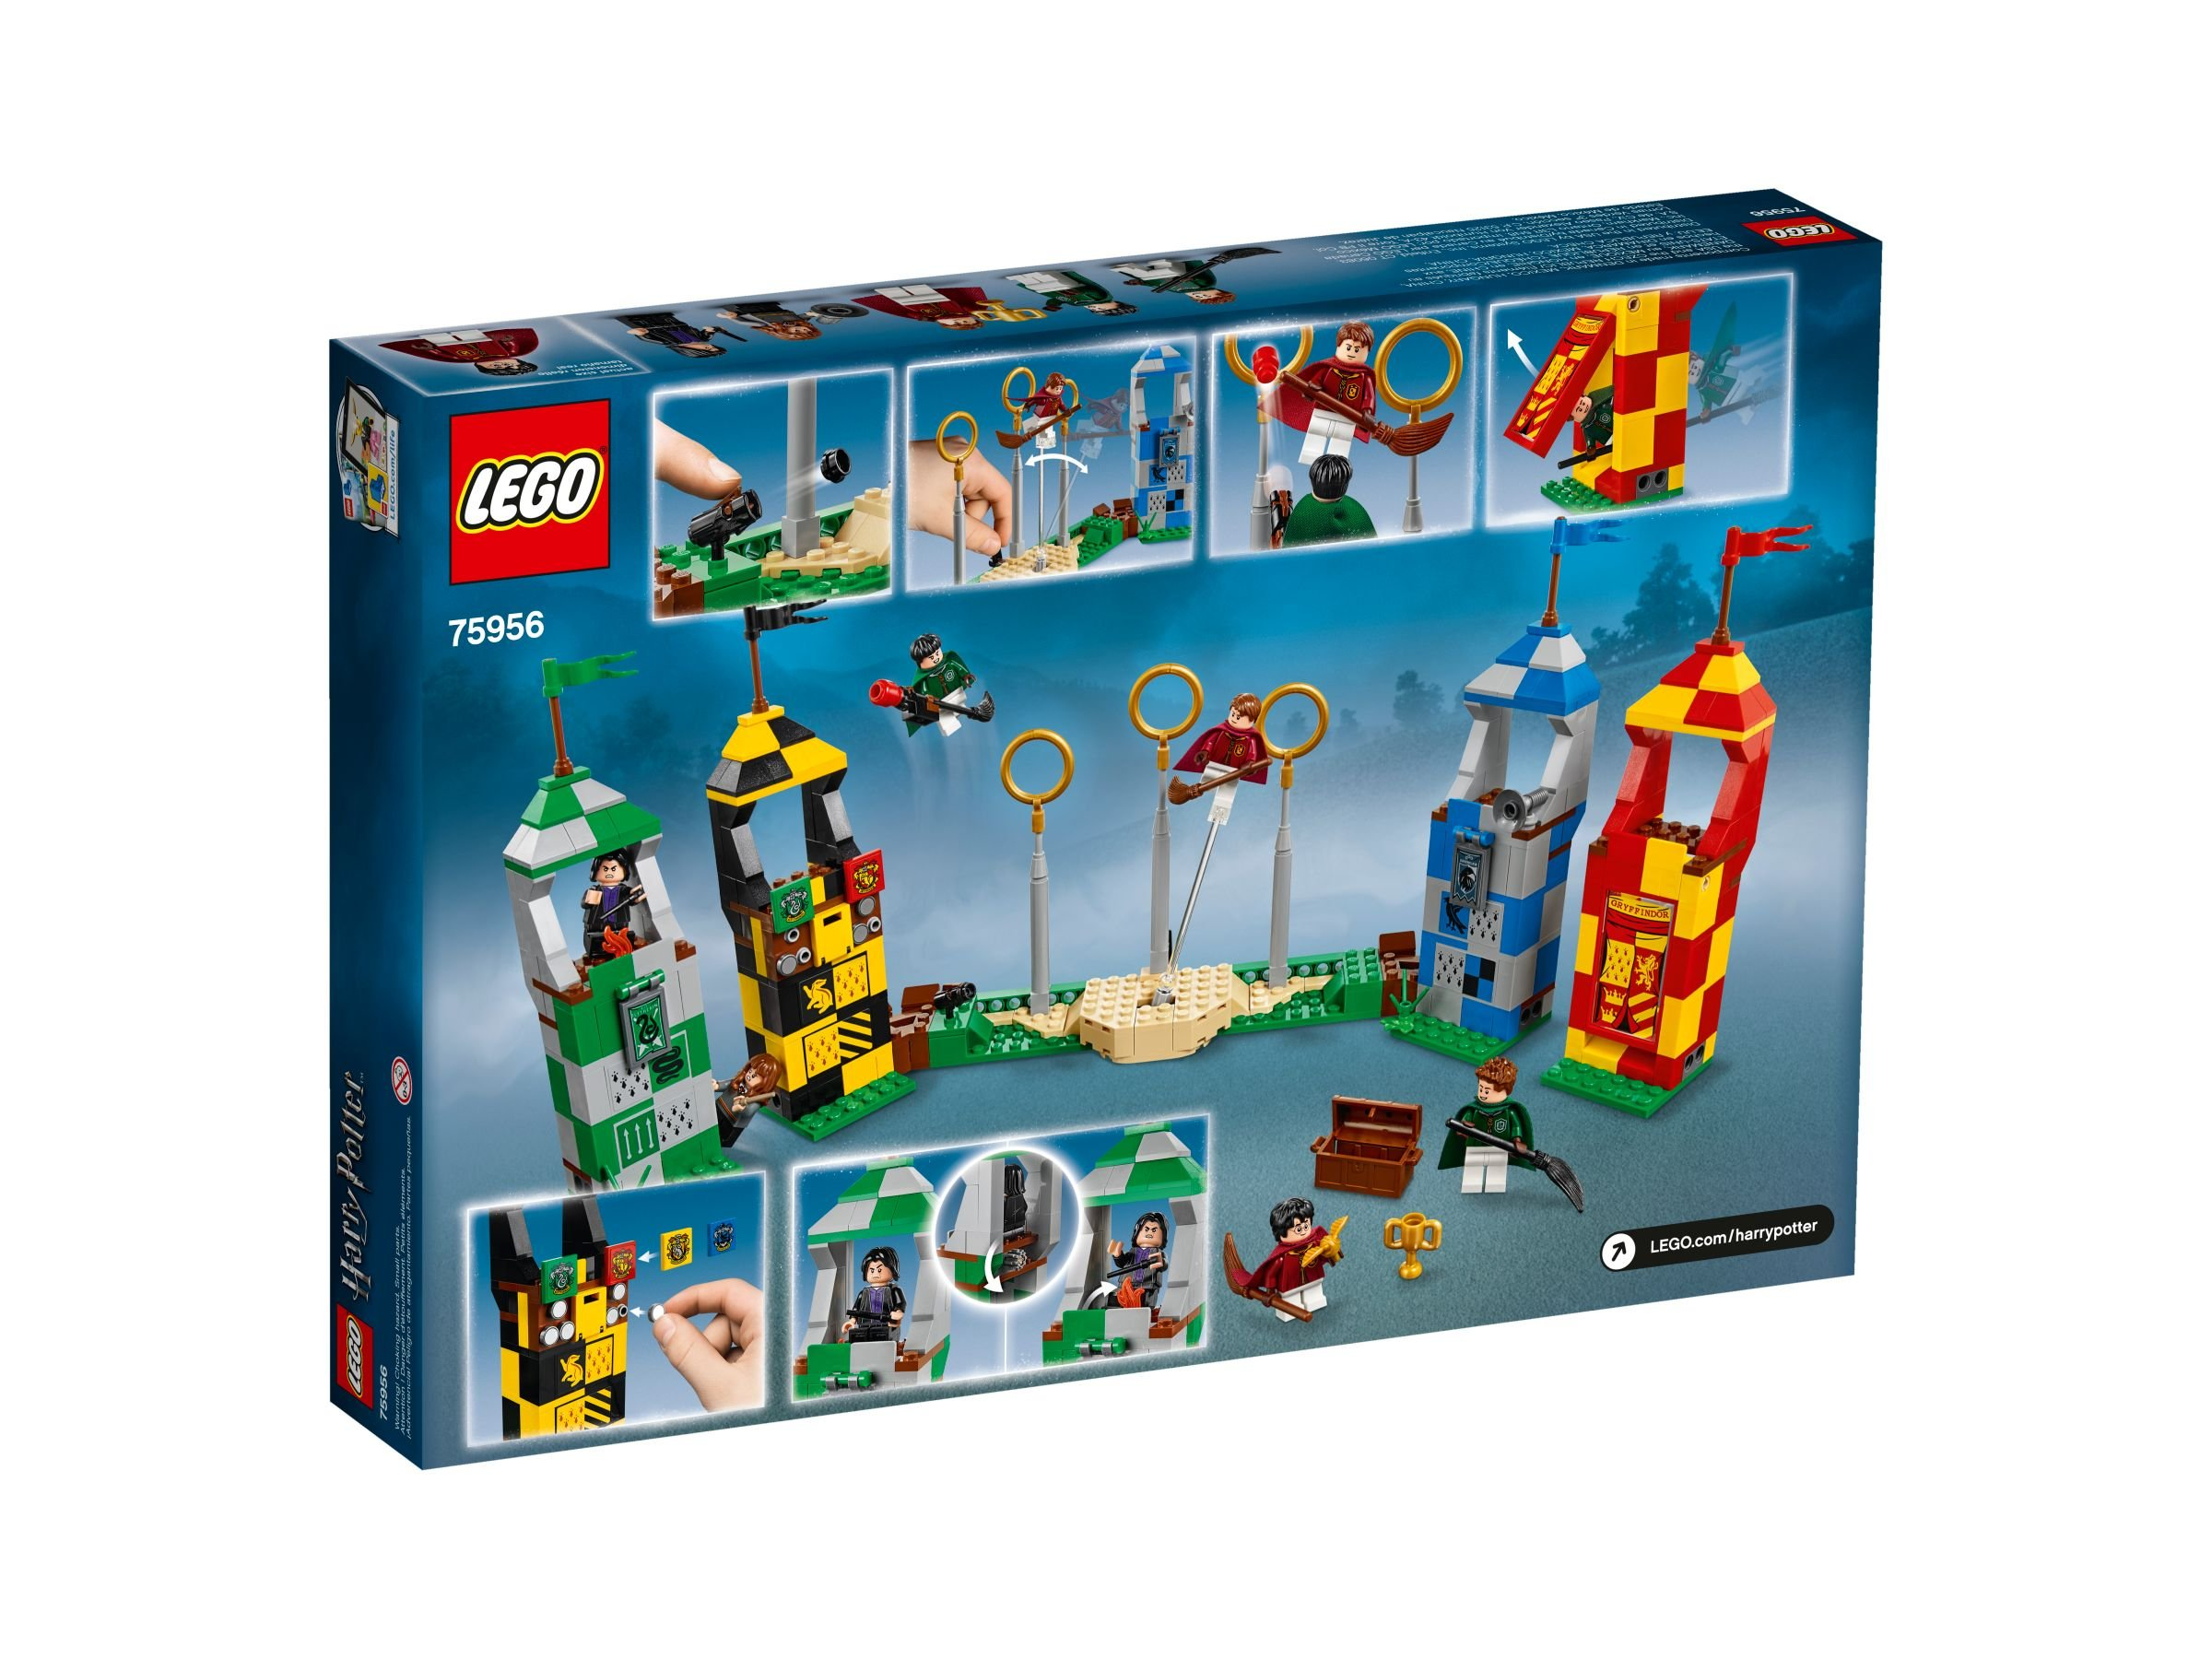 LEGO Harry Potter 75956 Quidditch™ Turnier LEGO_75956_alt2.jpg